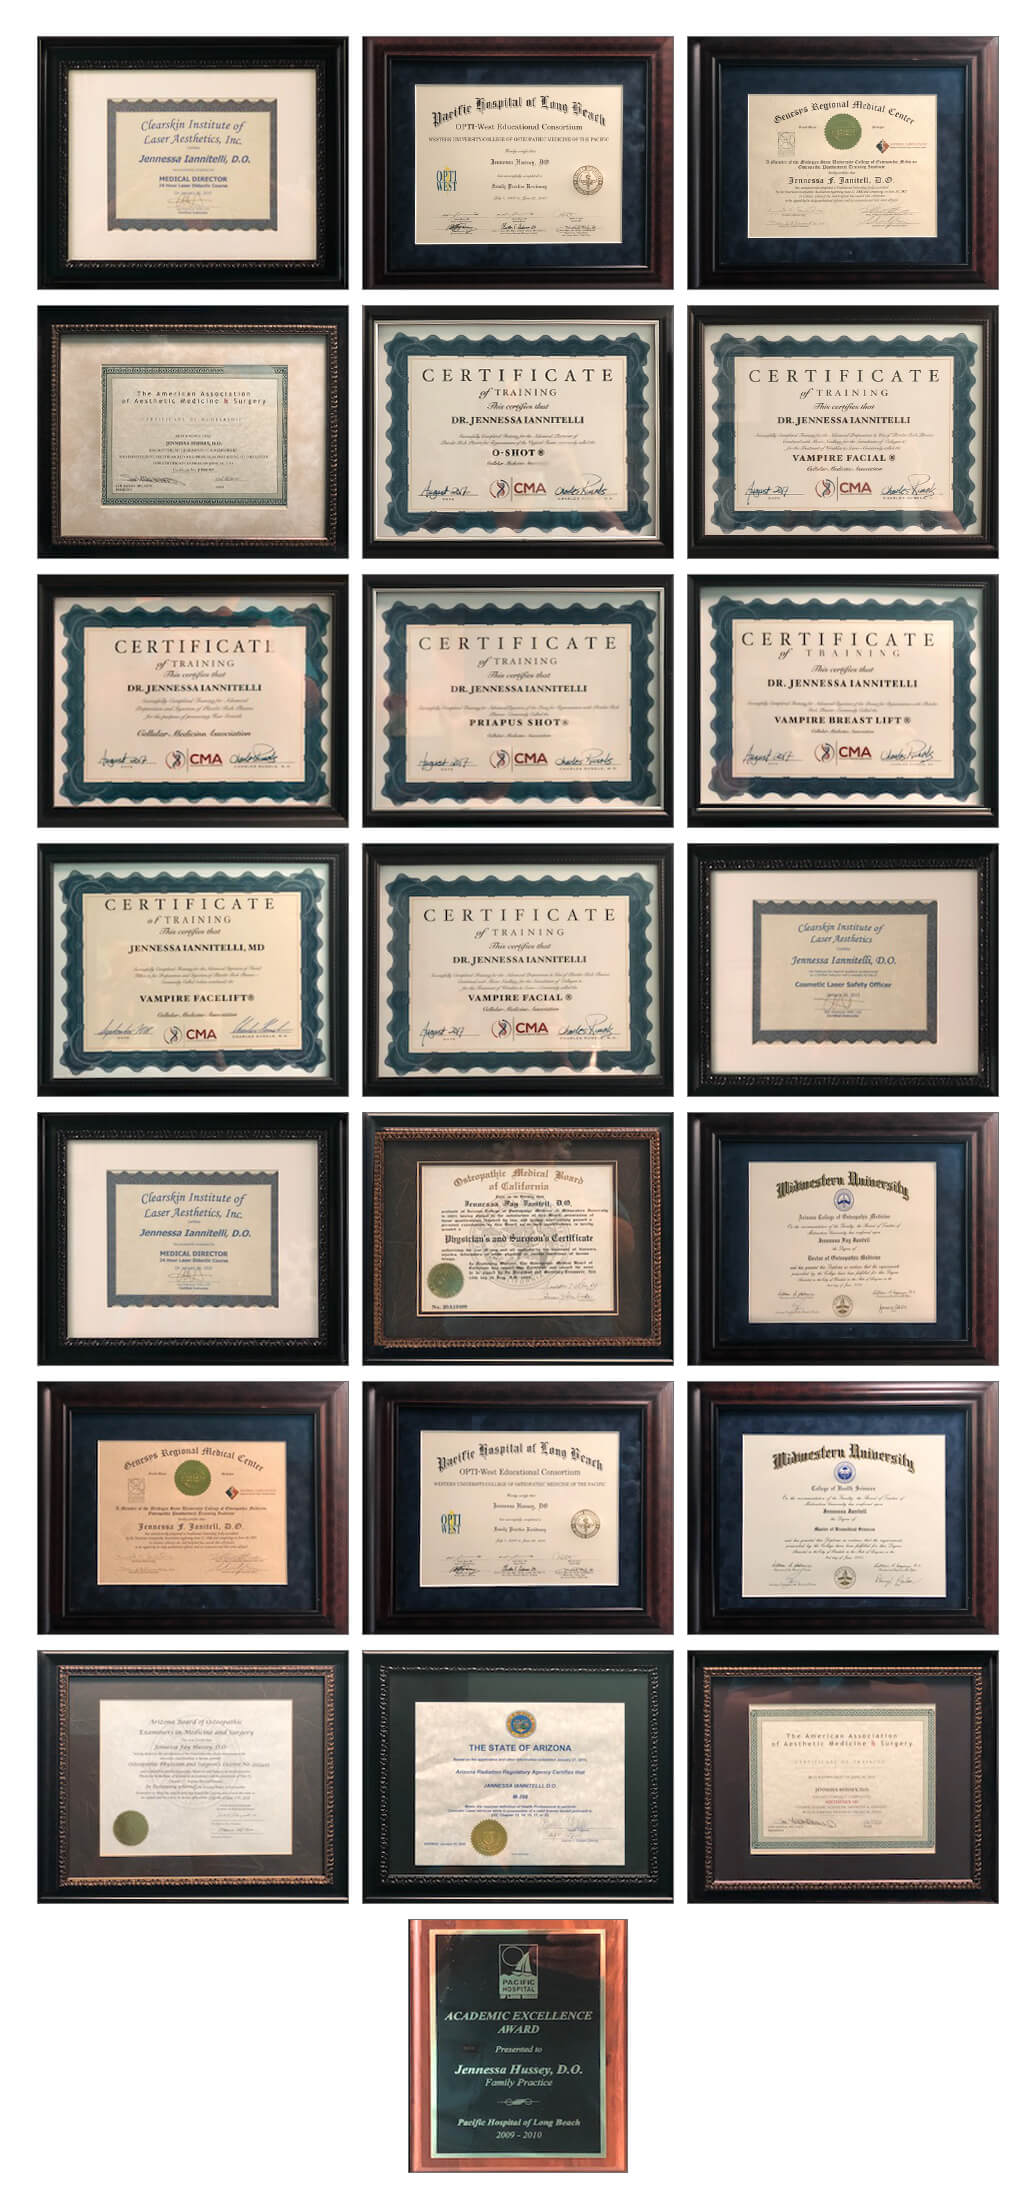 Advanced Image Med Spa Certifications